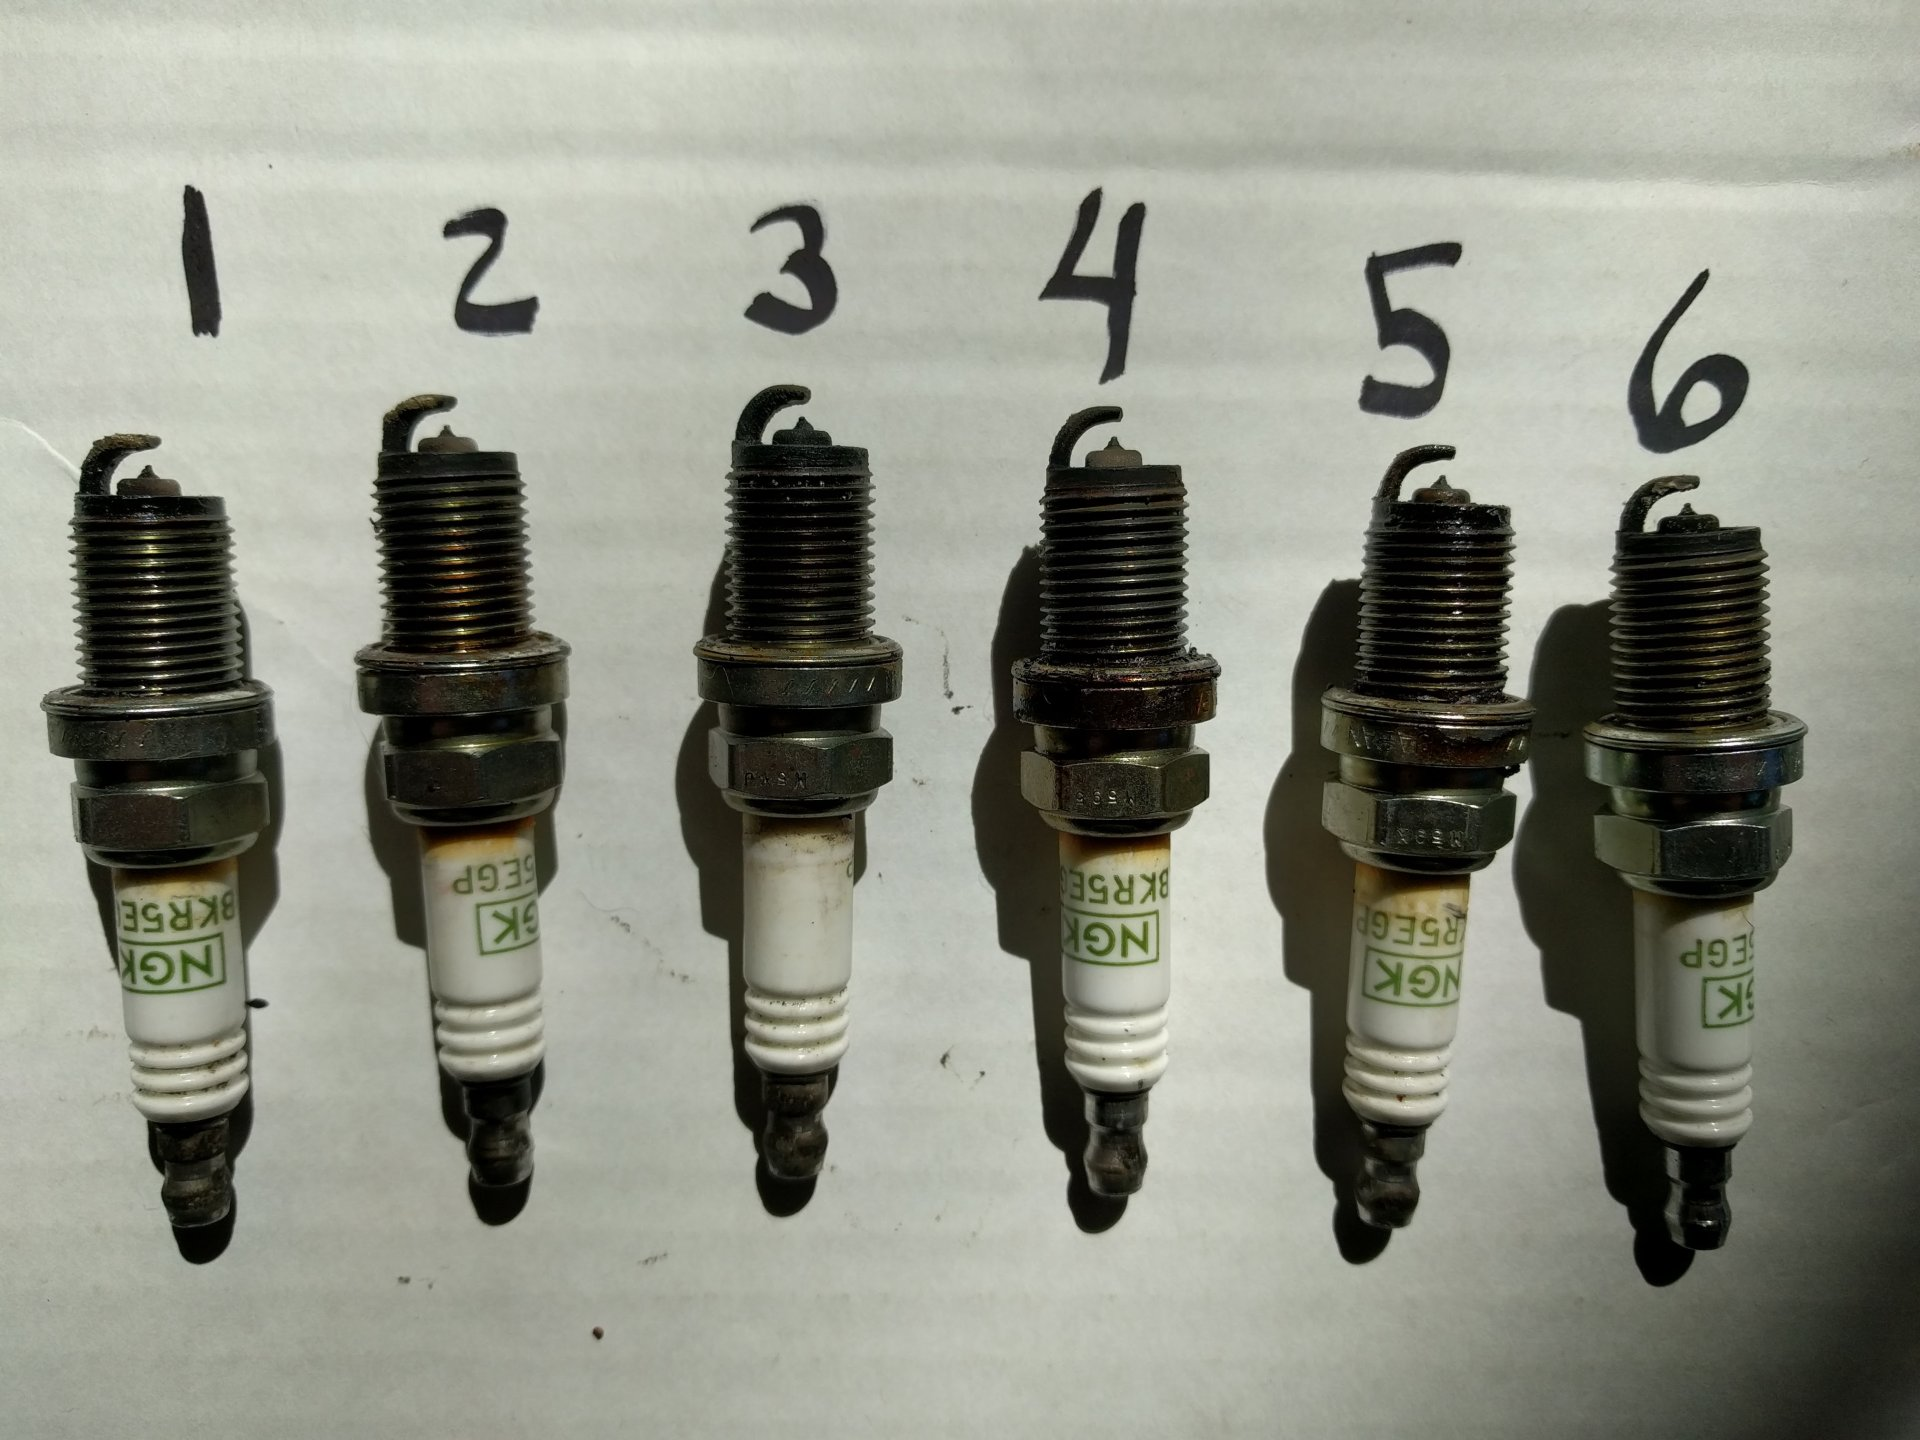 What do my spark plugs tell you? | IH8MUD Forum